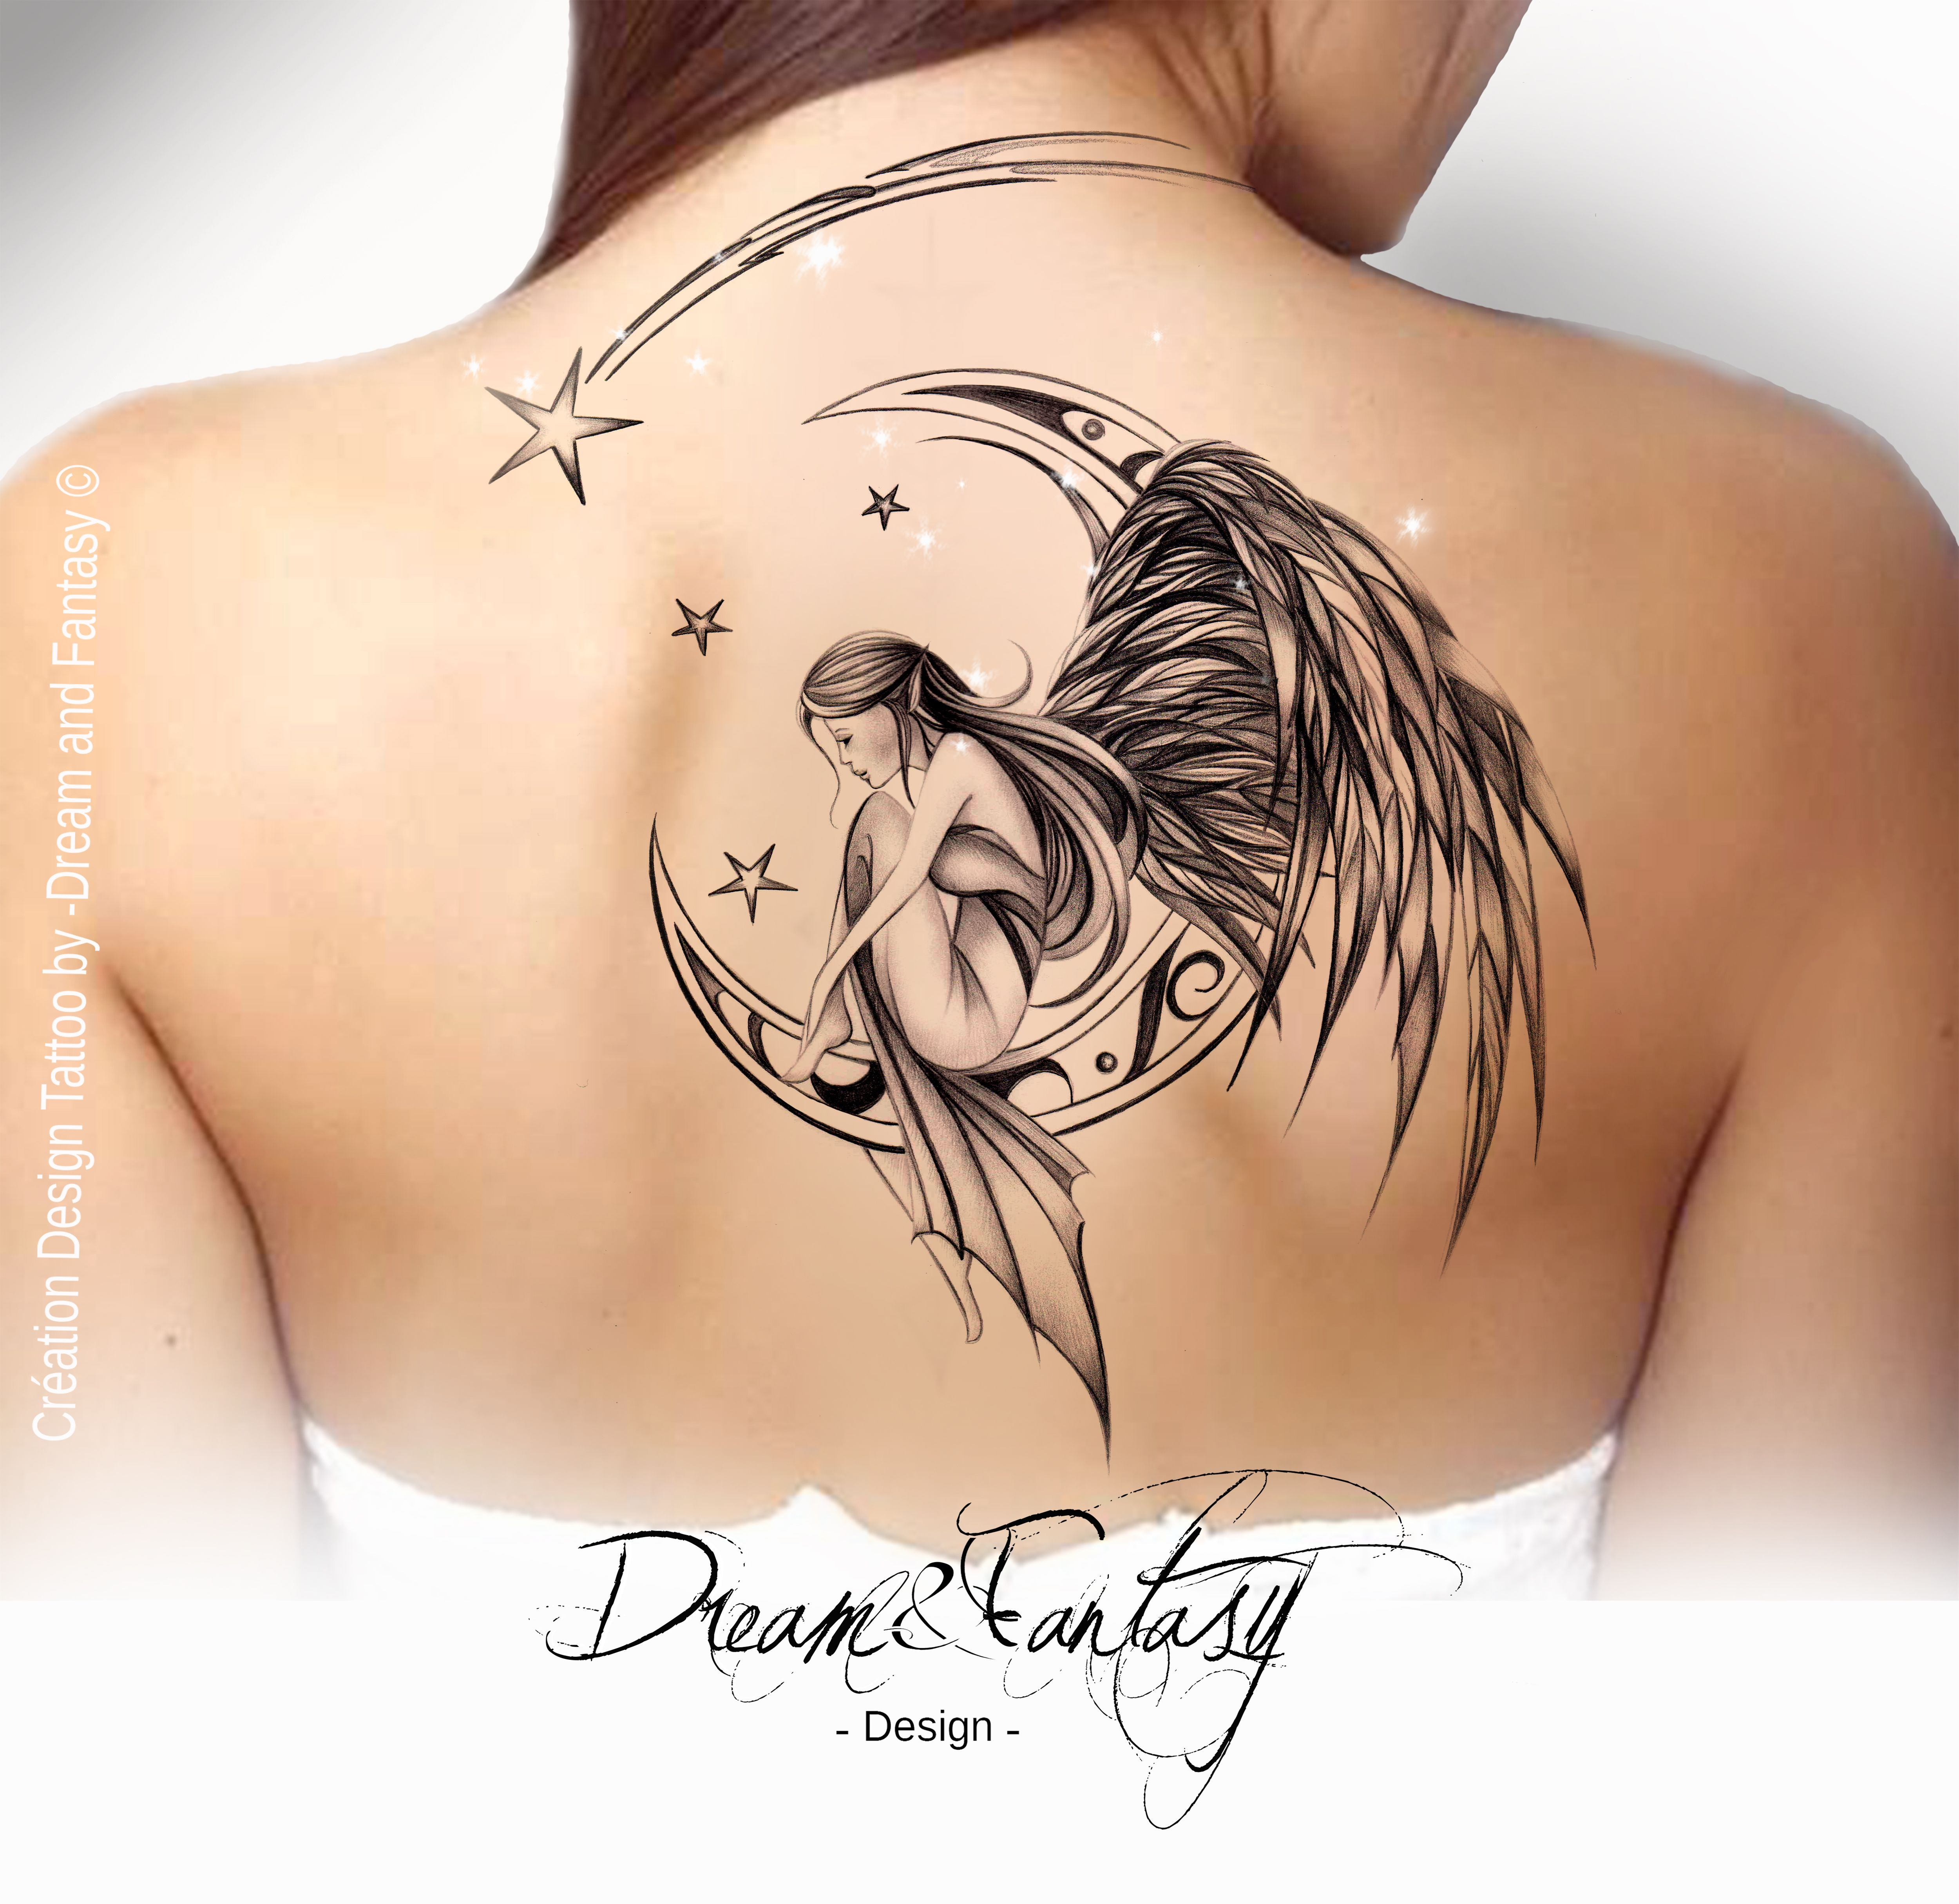 Signification tatouage hippocampe galerie tatouage - Tatouage ange signification ...